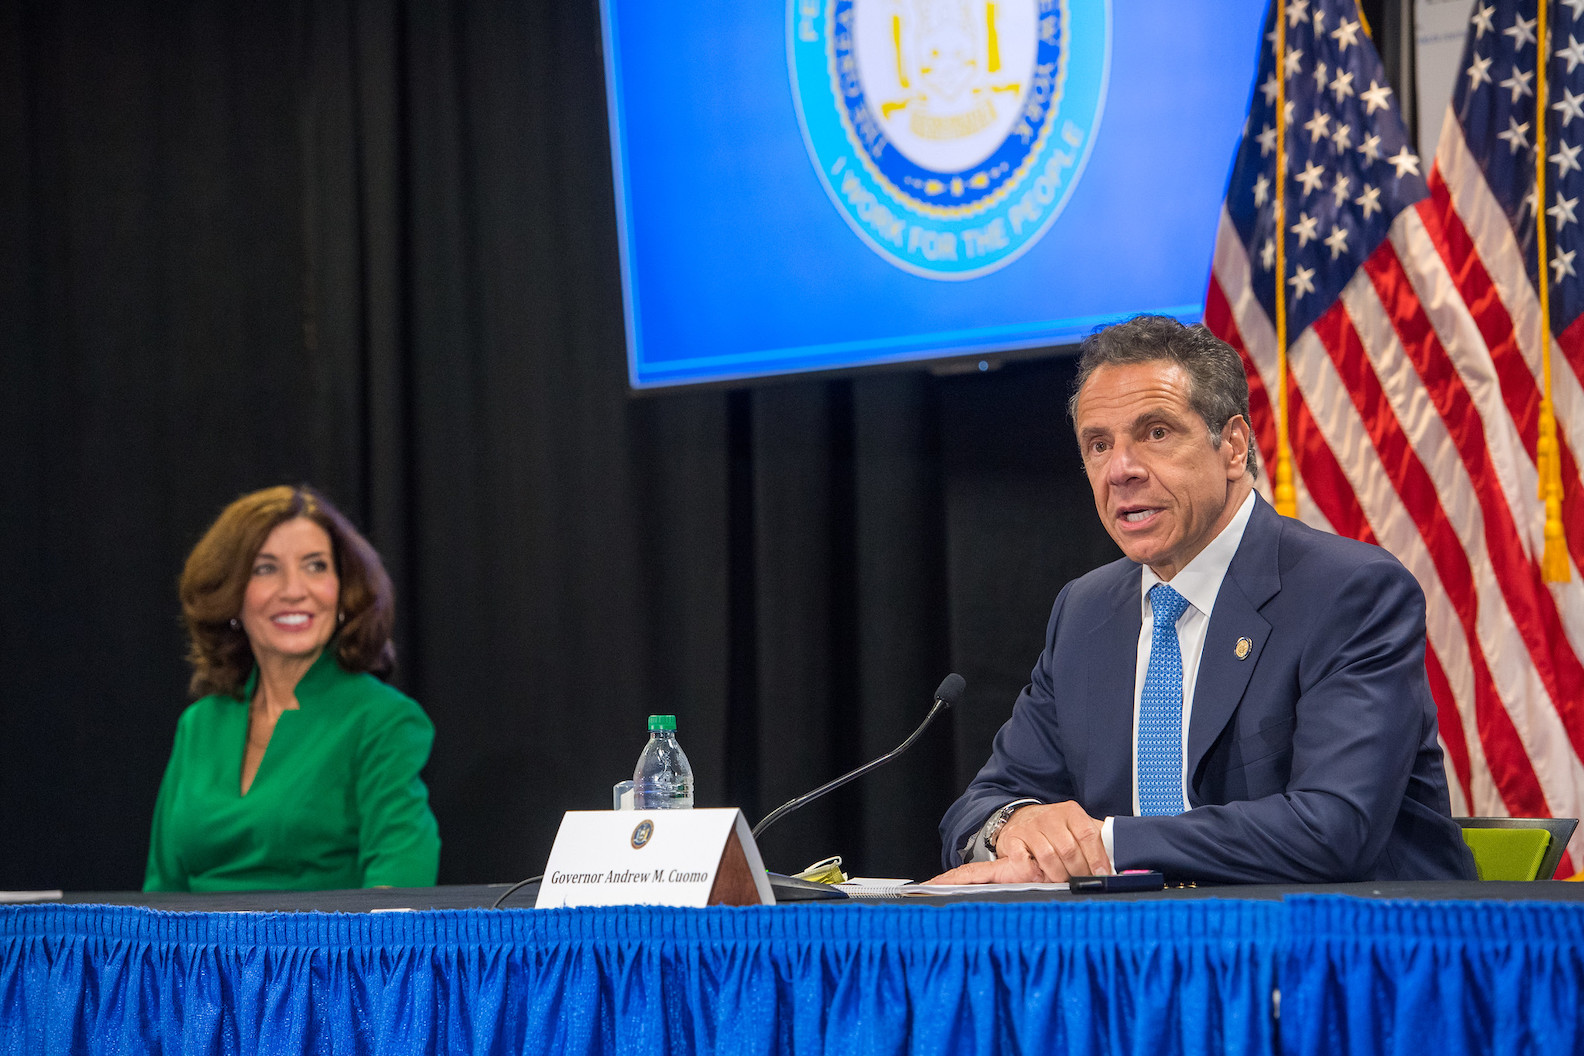 Gov. Andrew Cuomo held Monday's COVID-19 press briefing at Roswell Park Comprehensive Cancer Center in Buffalo. He is pictured with Lt. Gov. Kathy Hochul. (Photo by Darren McGee/ Office of Gov. Andrew M. Cuomo)